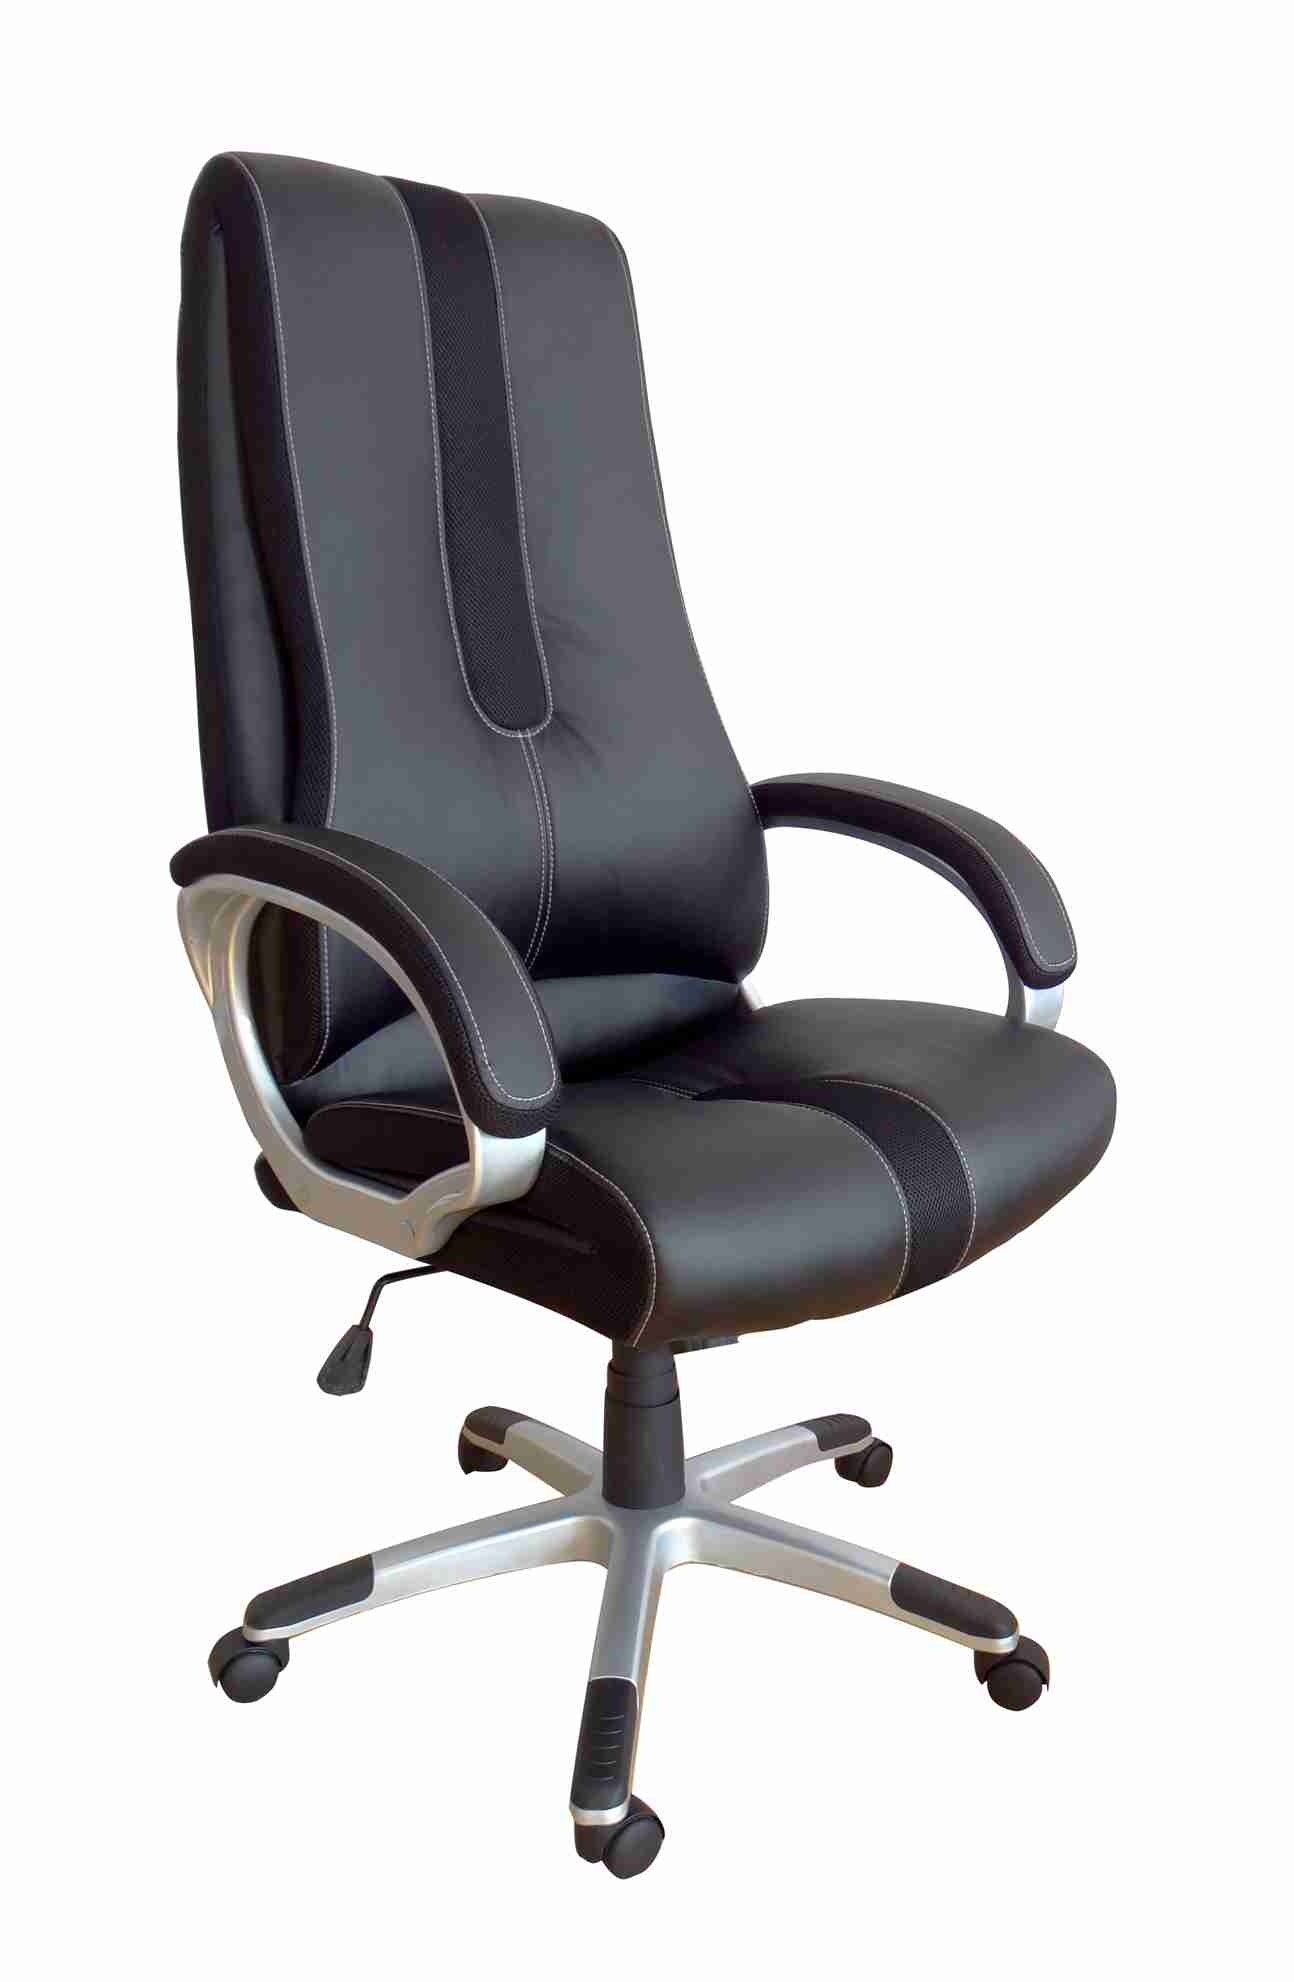 Office, Executive, Leader Chair With Bounded Leather And Adjustable Height-10787